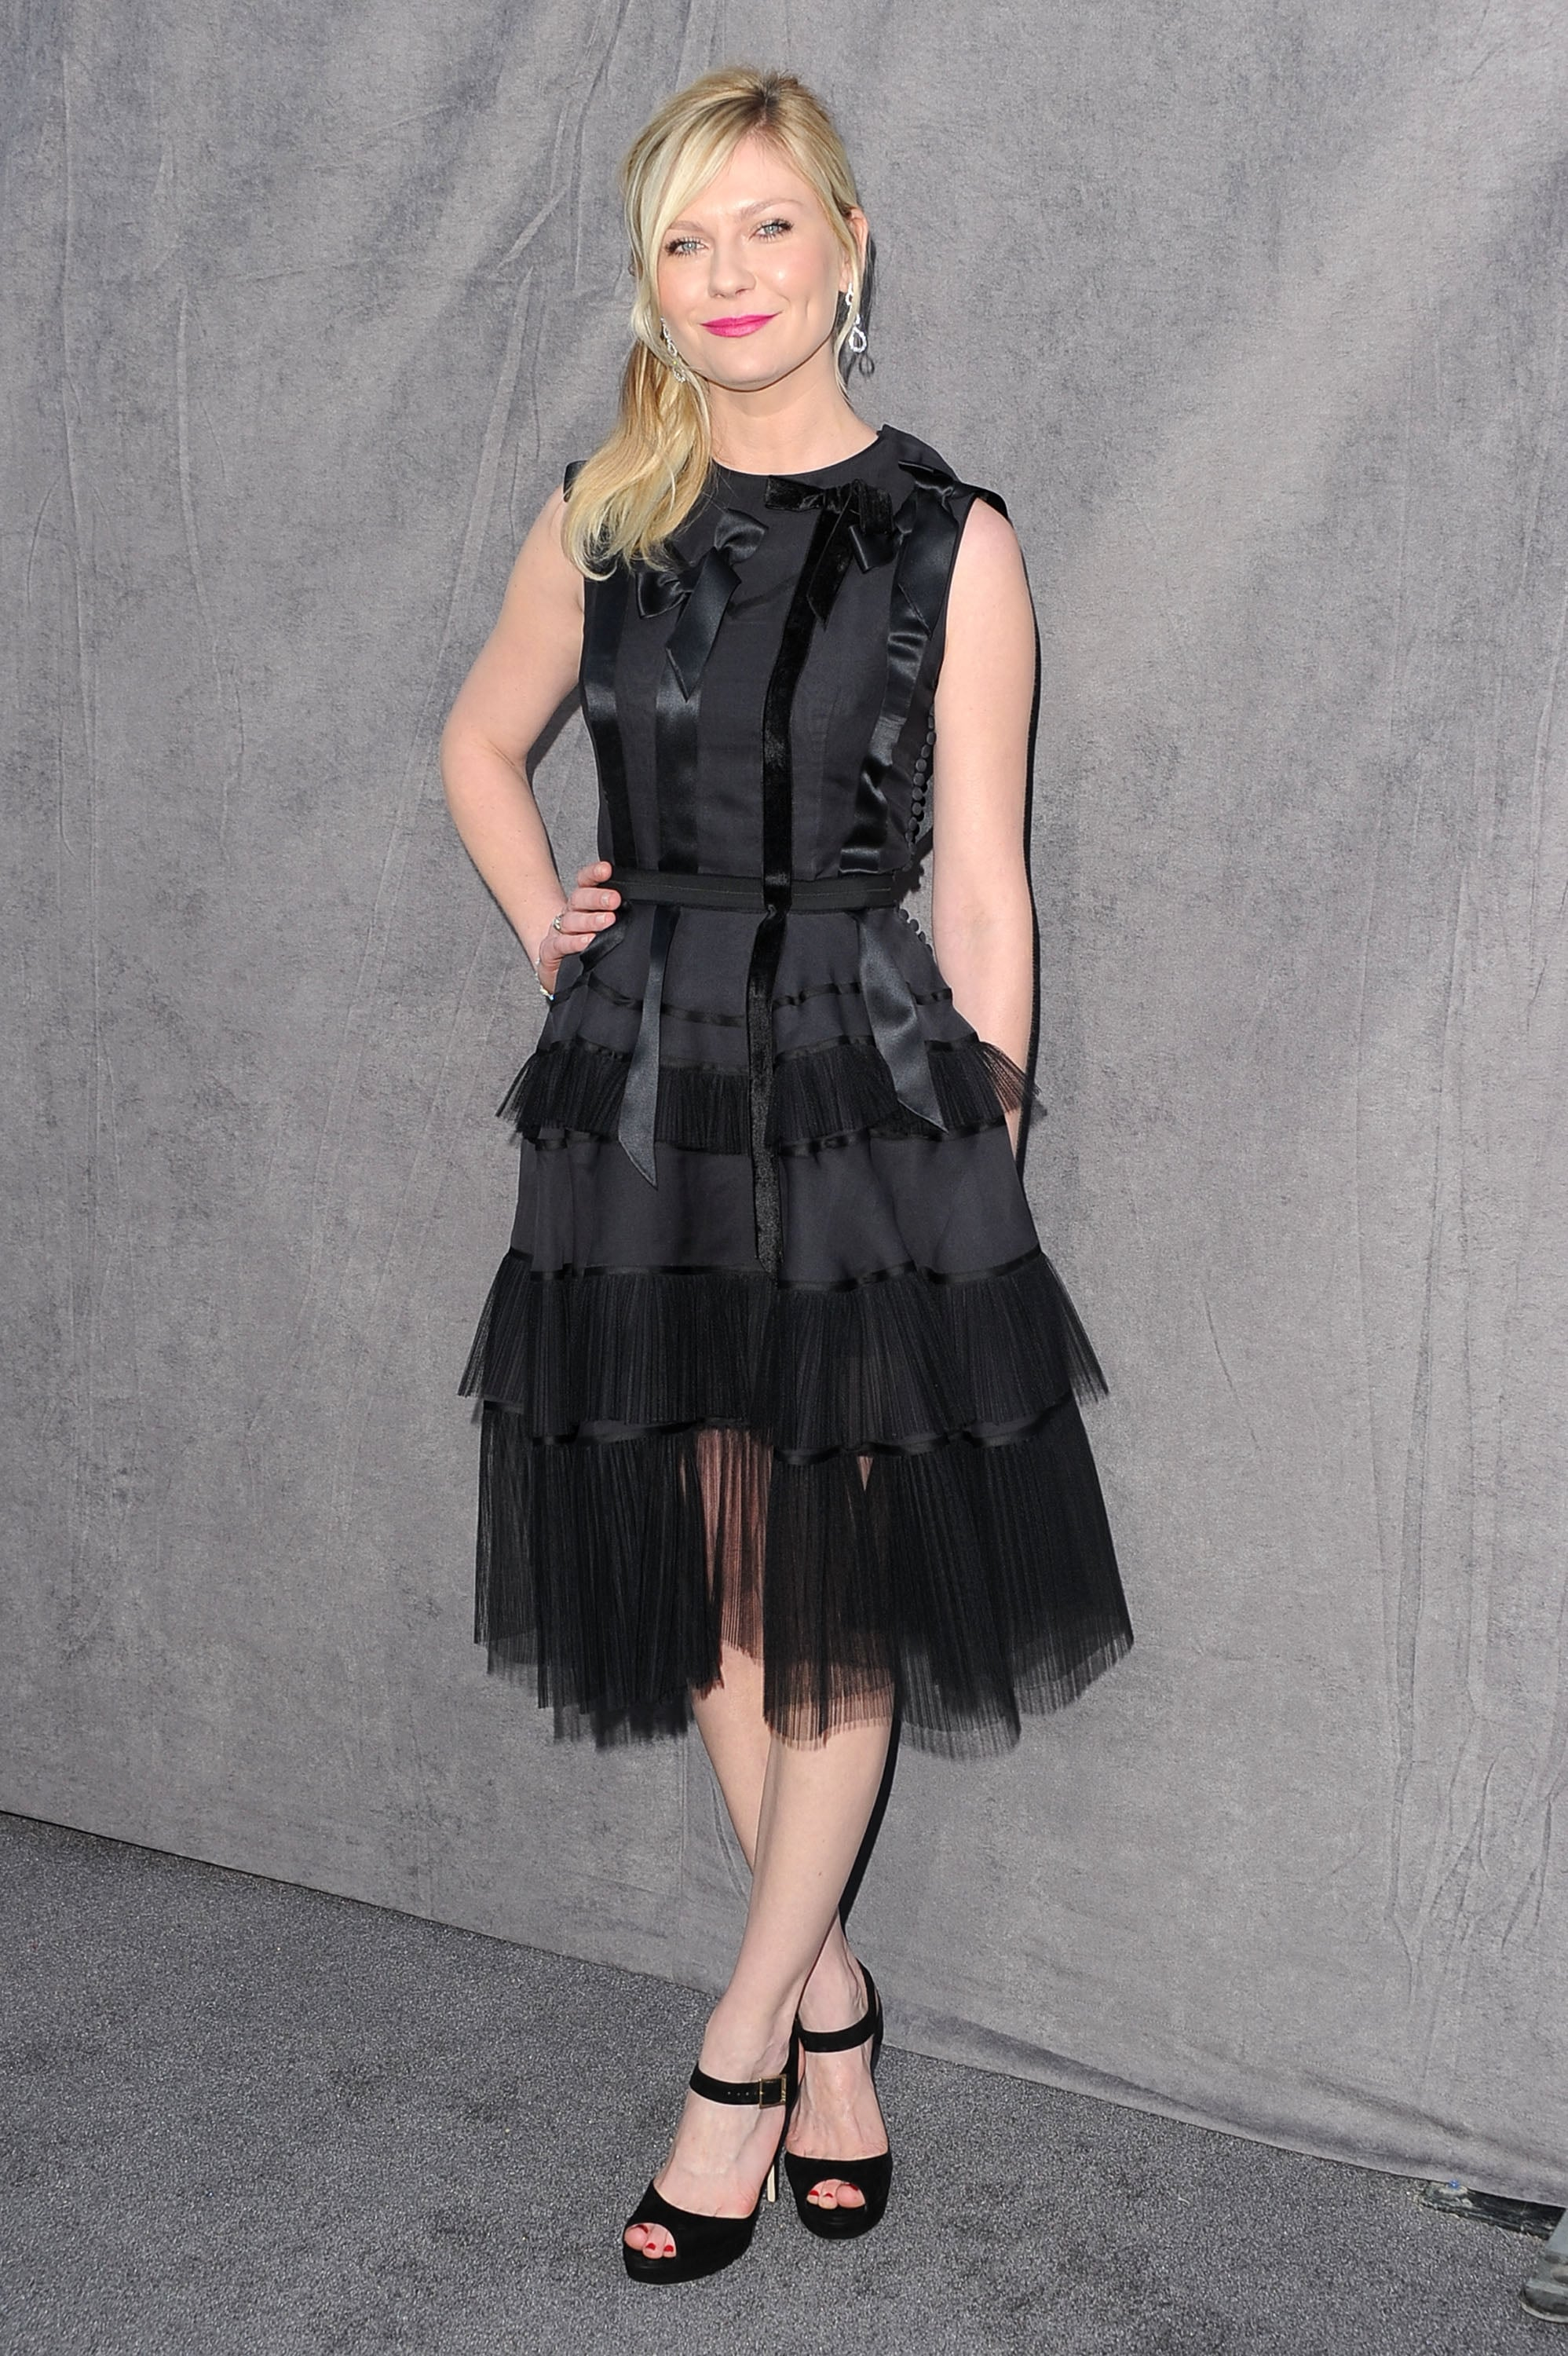 Kirsten Dunst wore a black Dior dress at the 2012 Critics' Choice Movie Awards.